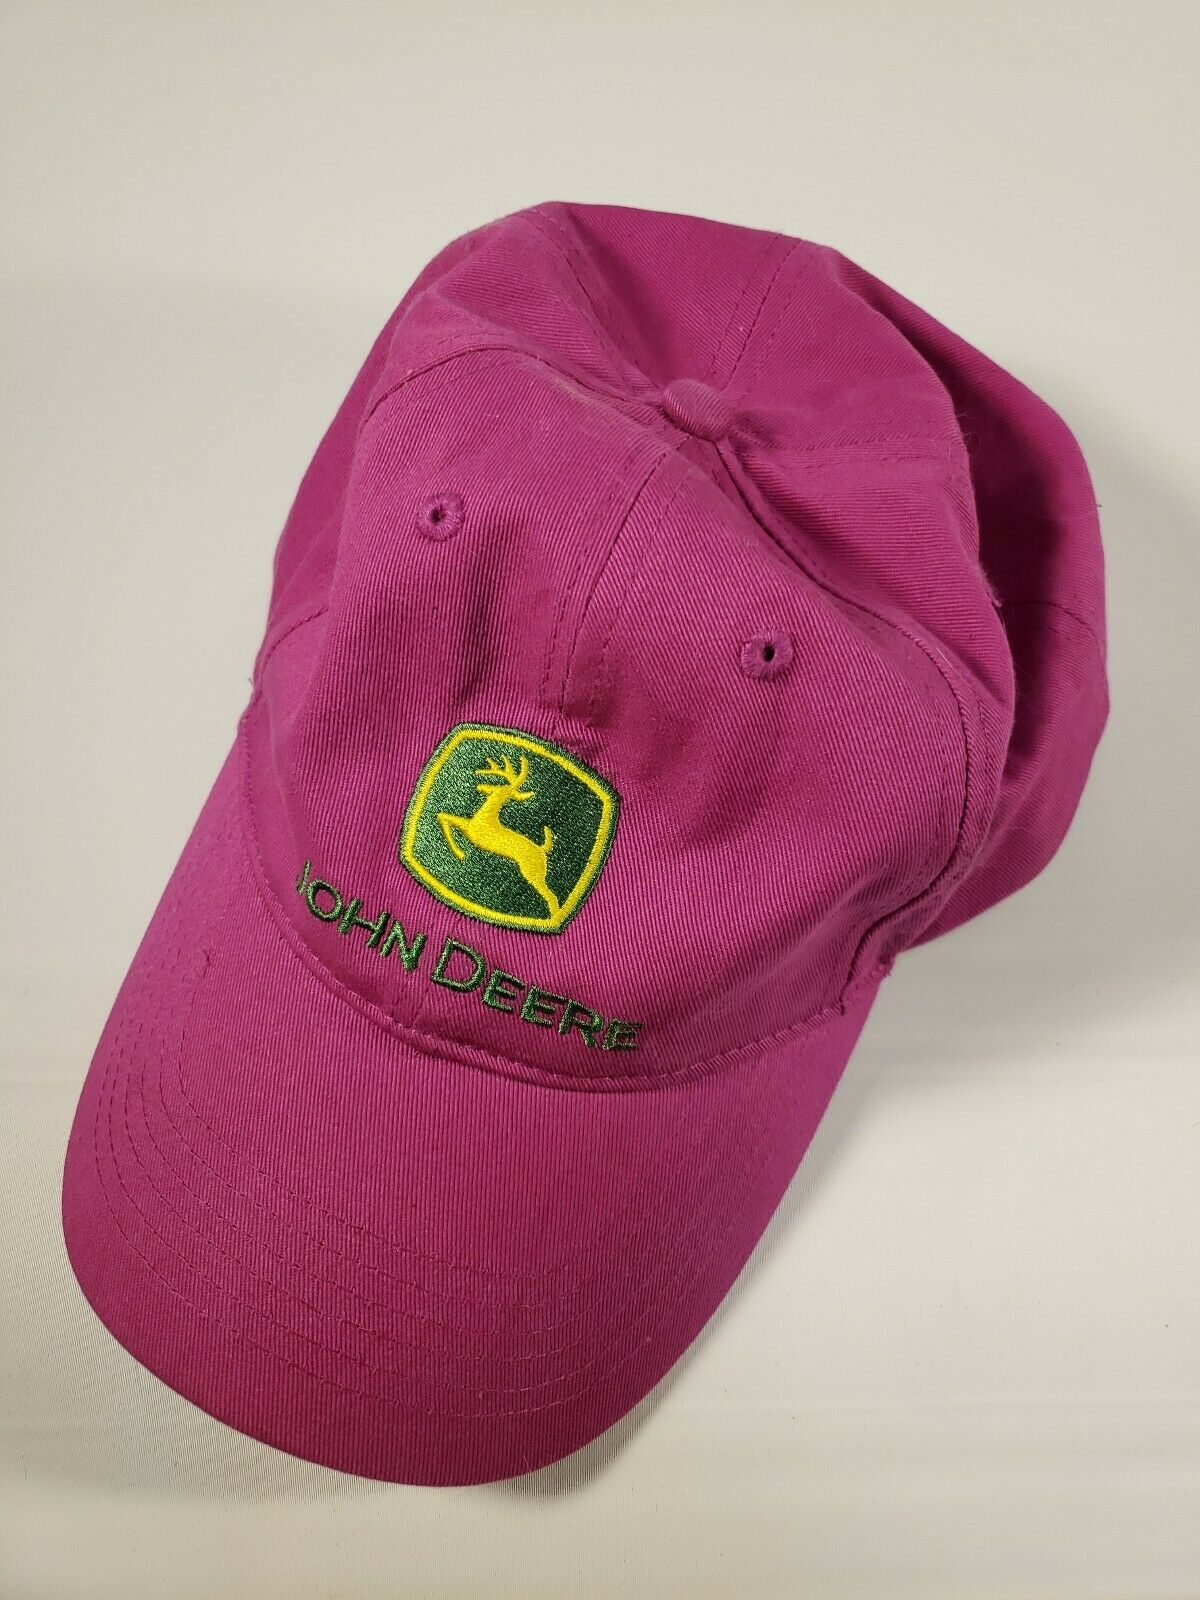 accessories john deere i love jd logo hat fuchsia chocoplate jp チョコプレート